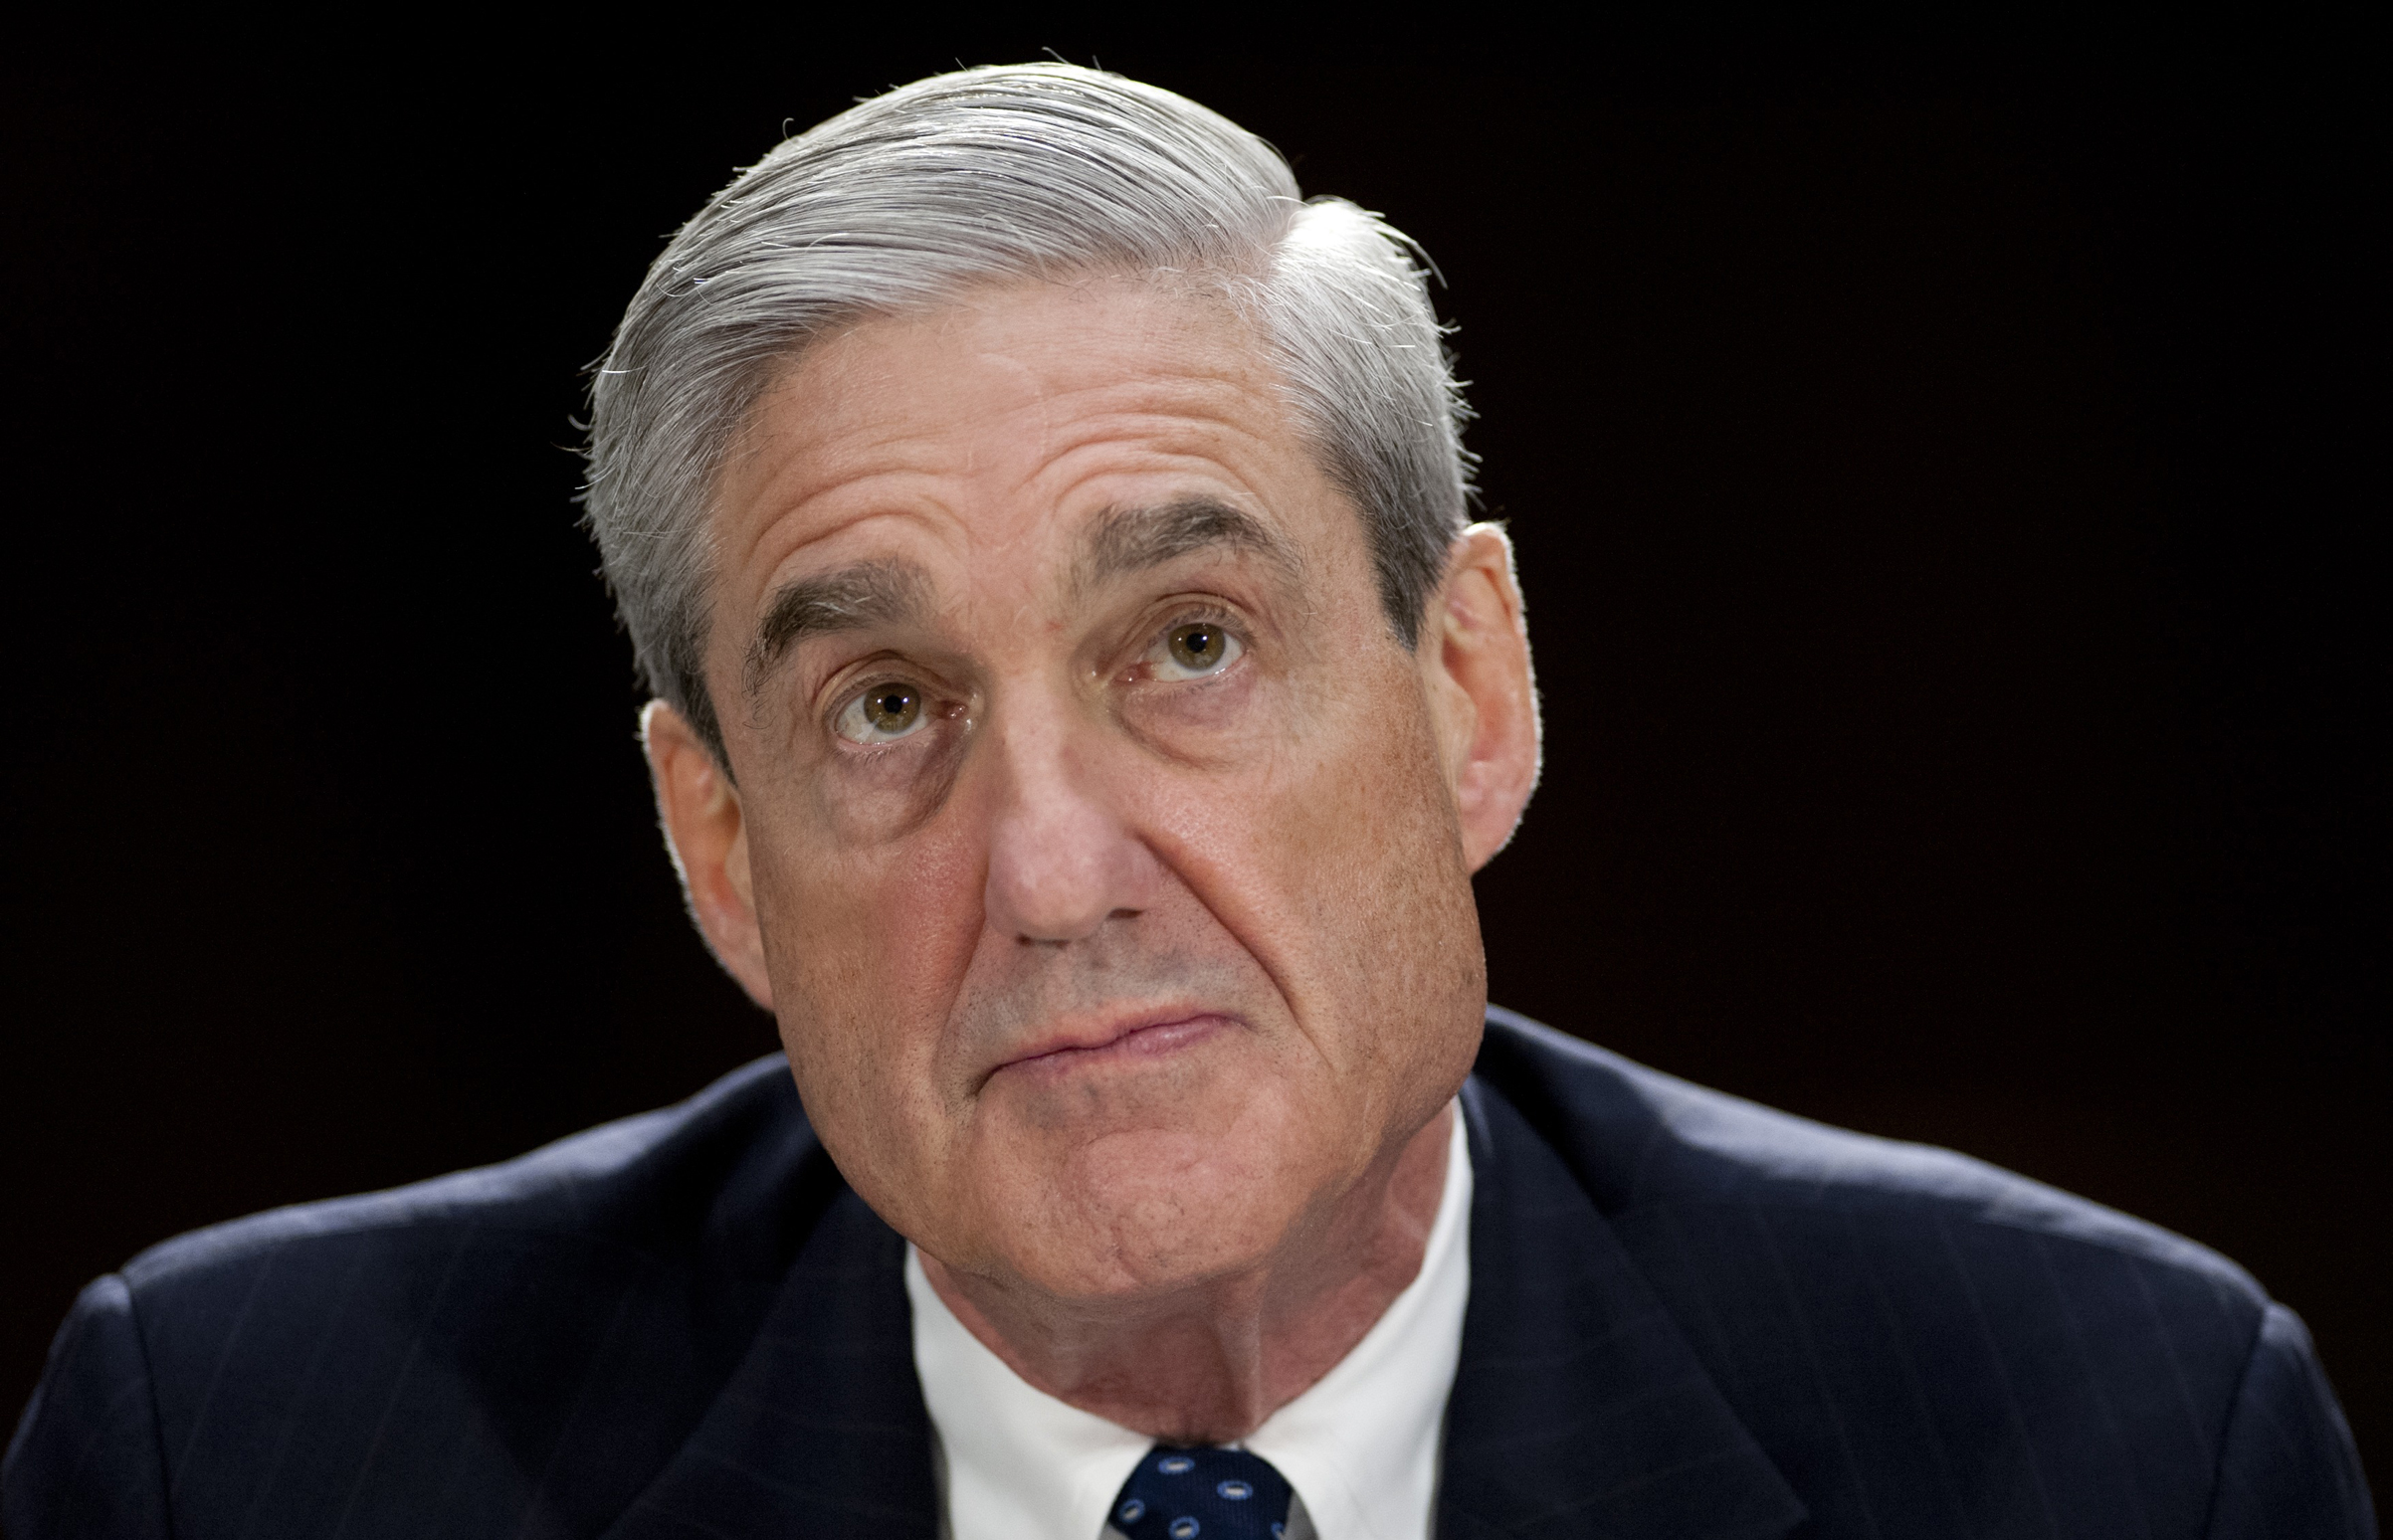 Then–FBI Director Robert Mueller testifies before the U.S. Senate Judiciary Subcommittee on Oversight in Washington, D.C., on June 19, 2013.